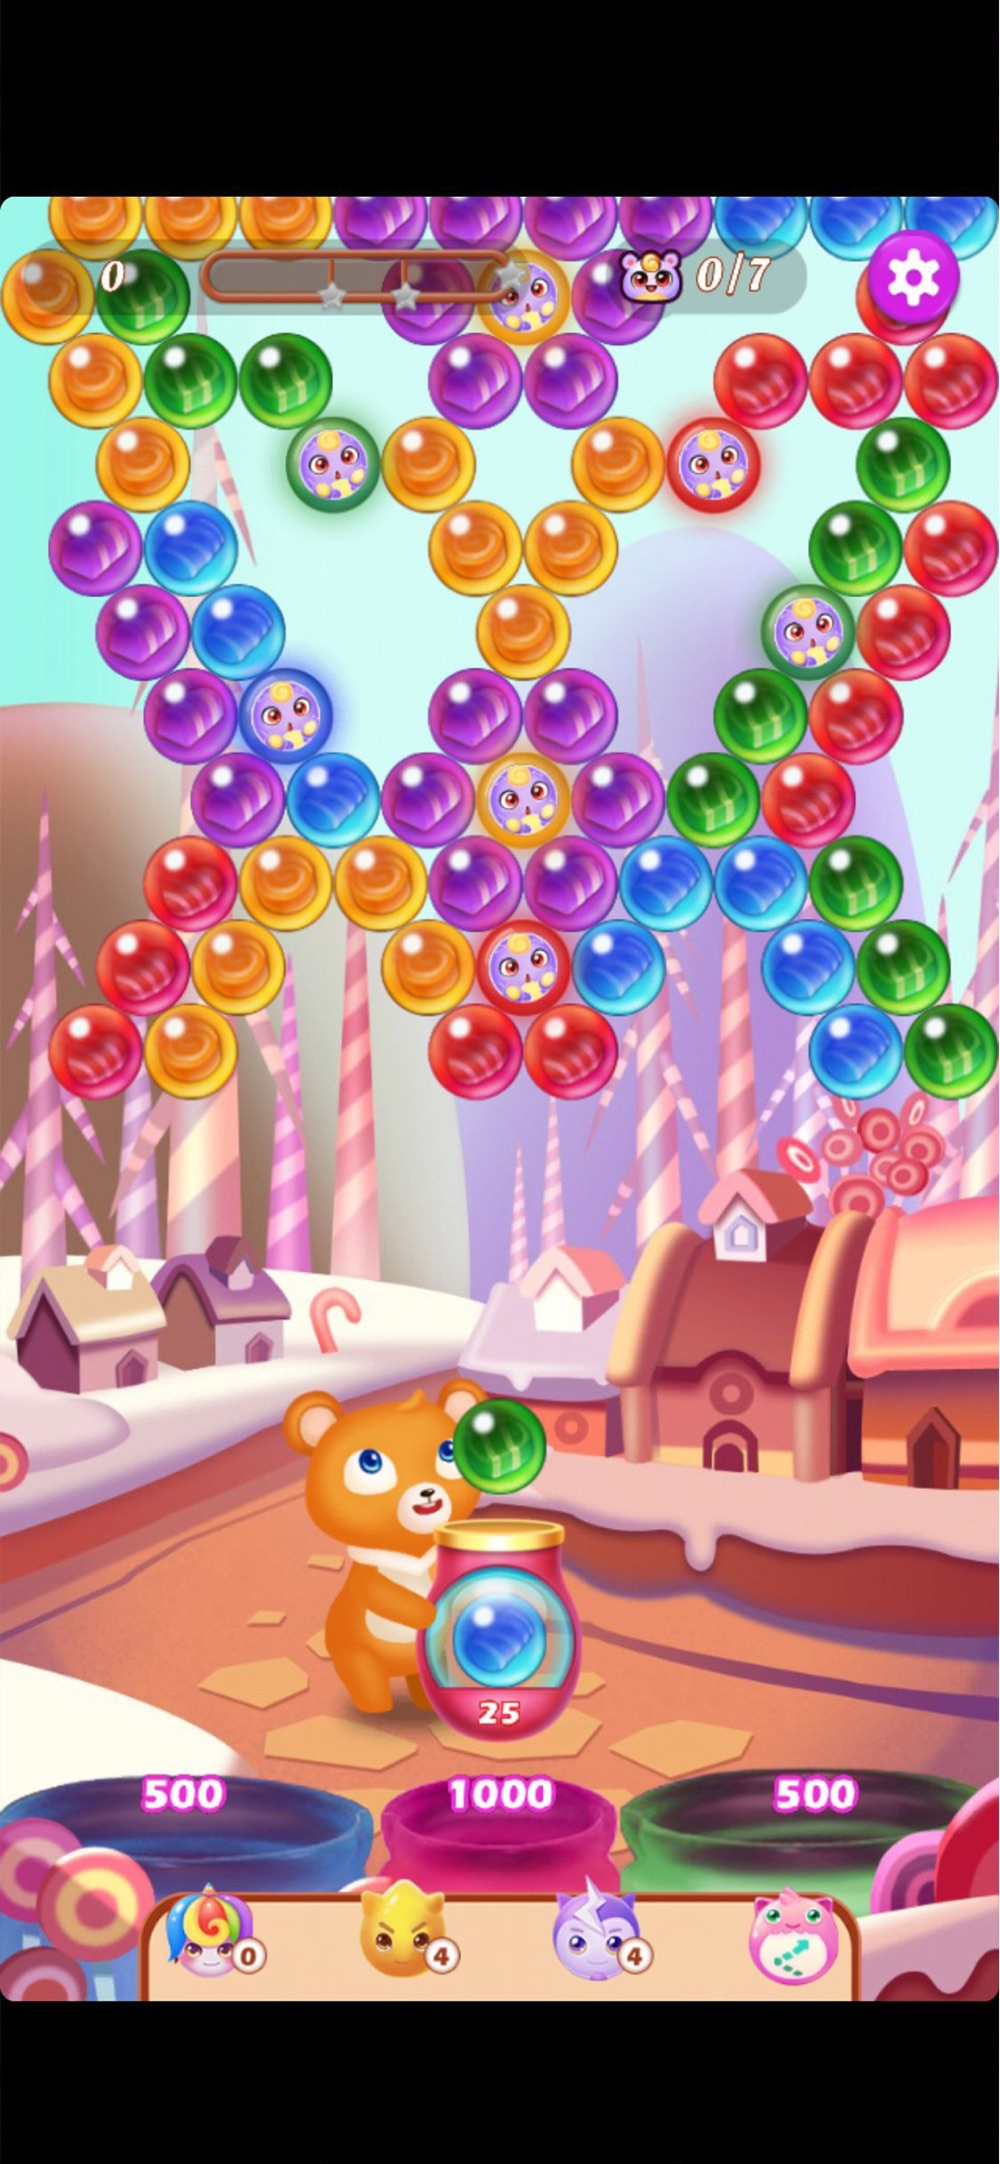 Bear Pop – Bubble Shooter Game hack tool